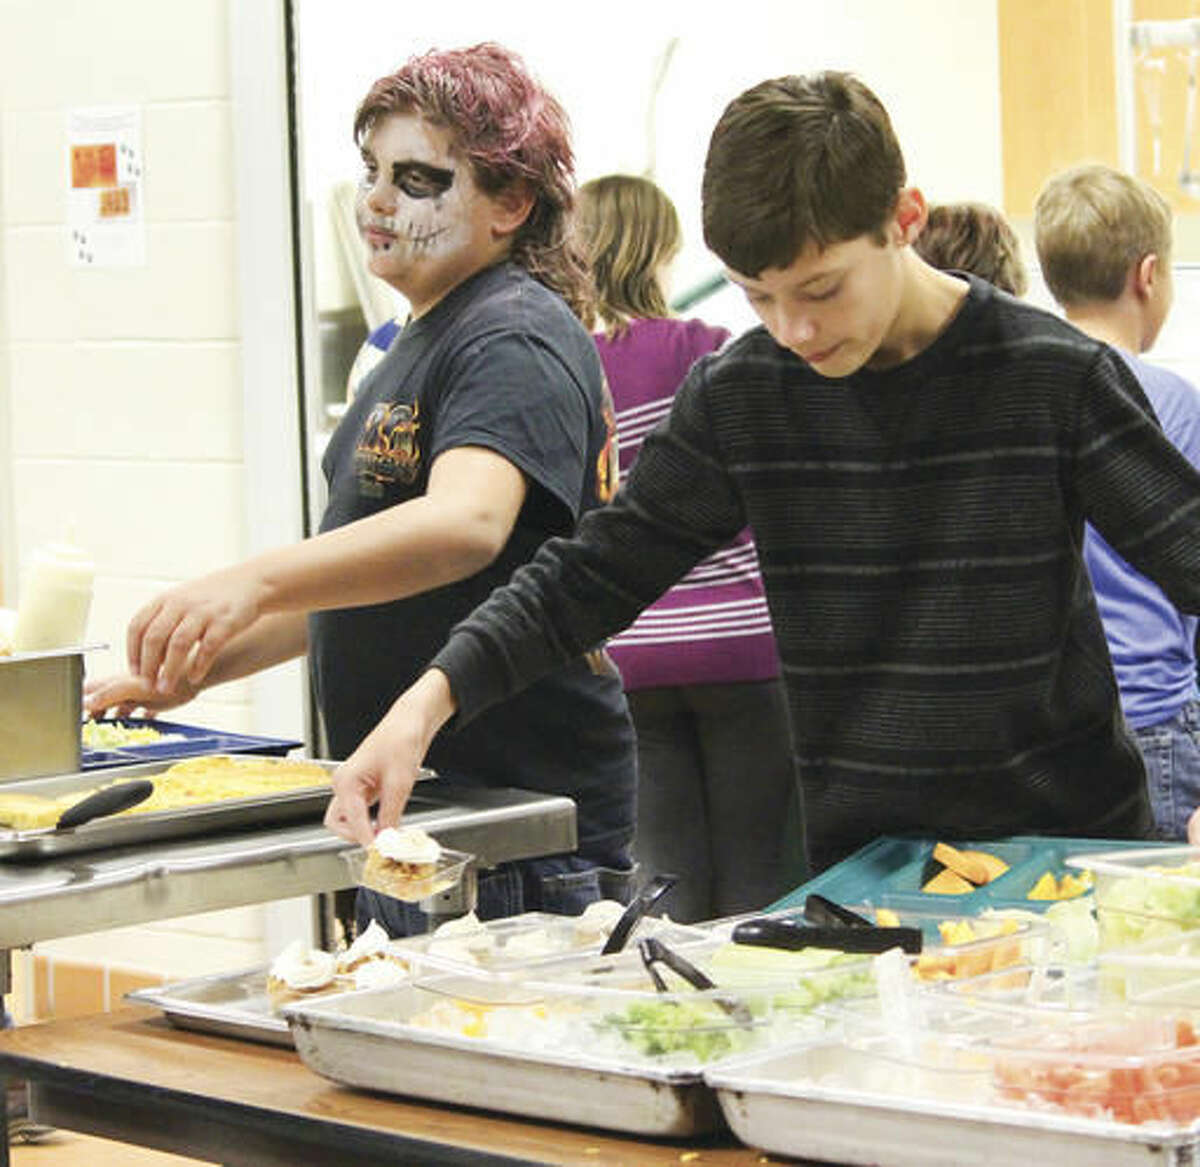 Brandon Rice, right, picks up an apple crisp from the Thermopolis Middle School lunch room. The apple crisp was made from apples picked by students in the farm to school program and served on Halloween. (Tesia Galvan/Northern Wyoming Daily News via aP)